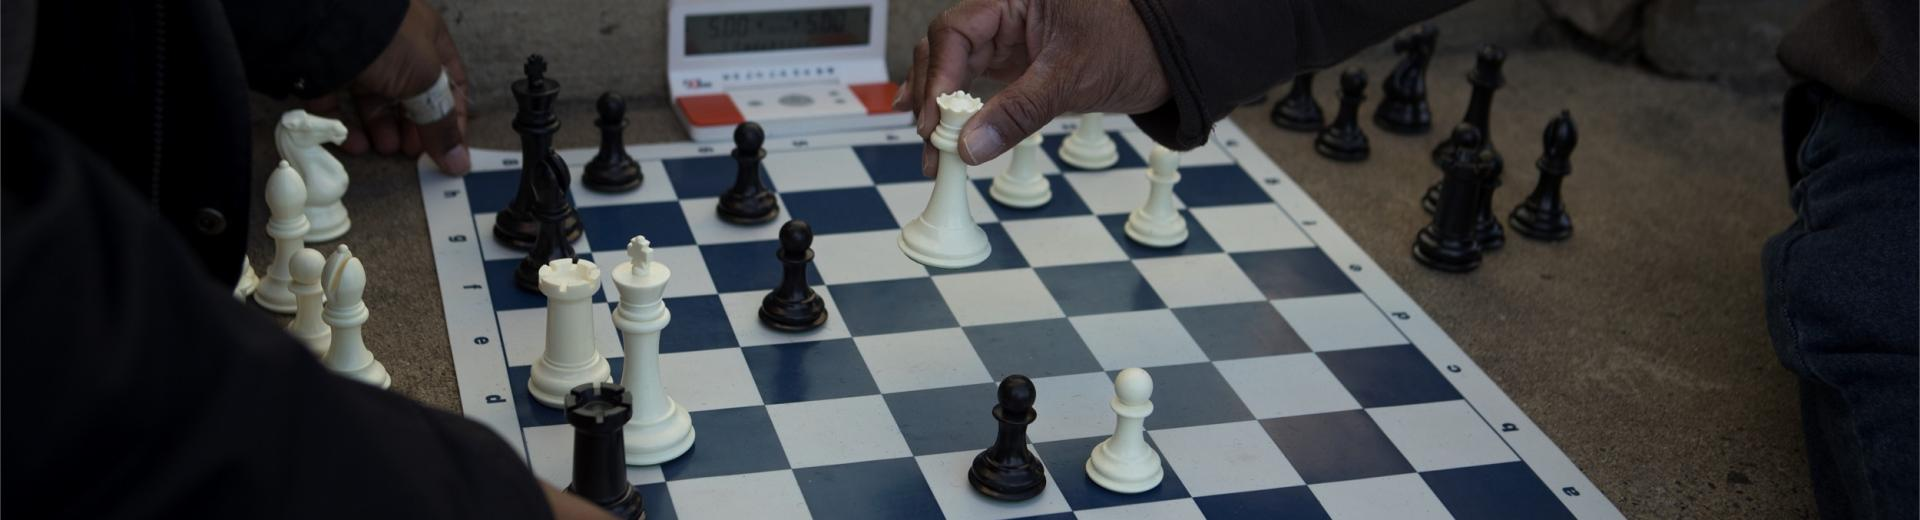 closeup of people playing chess